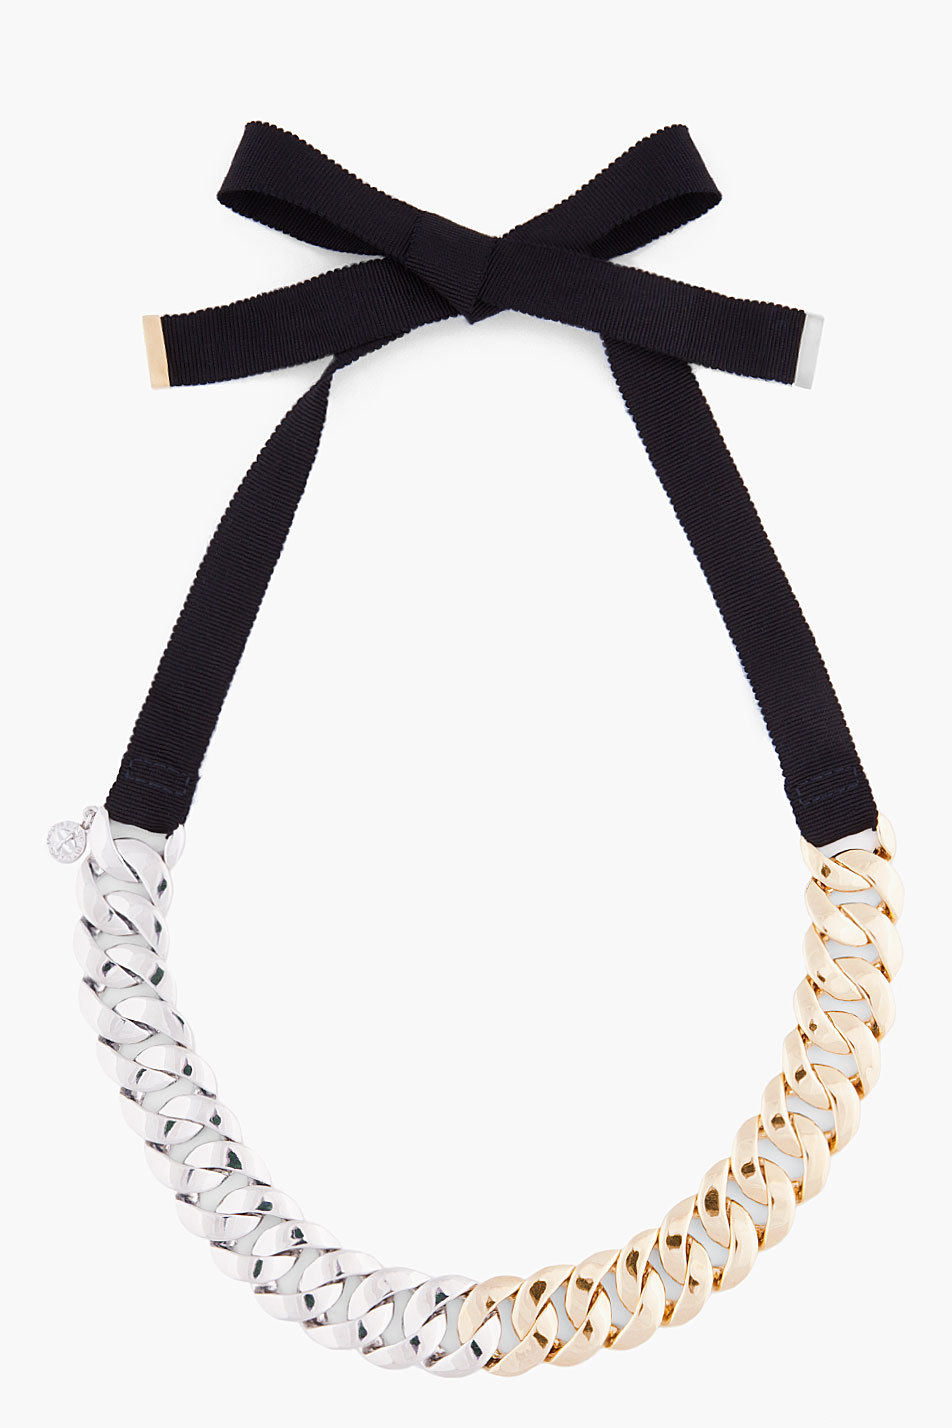 MARC BY MARC JACOBS // PRETTY TURNLOCK NECKLACE - ssense